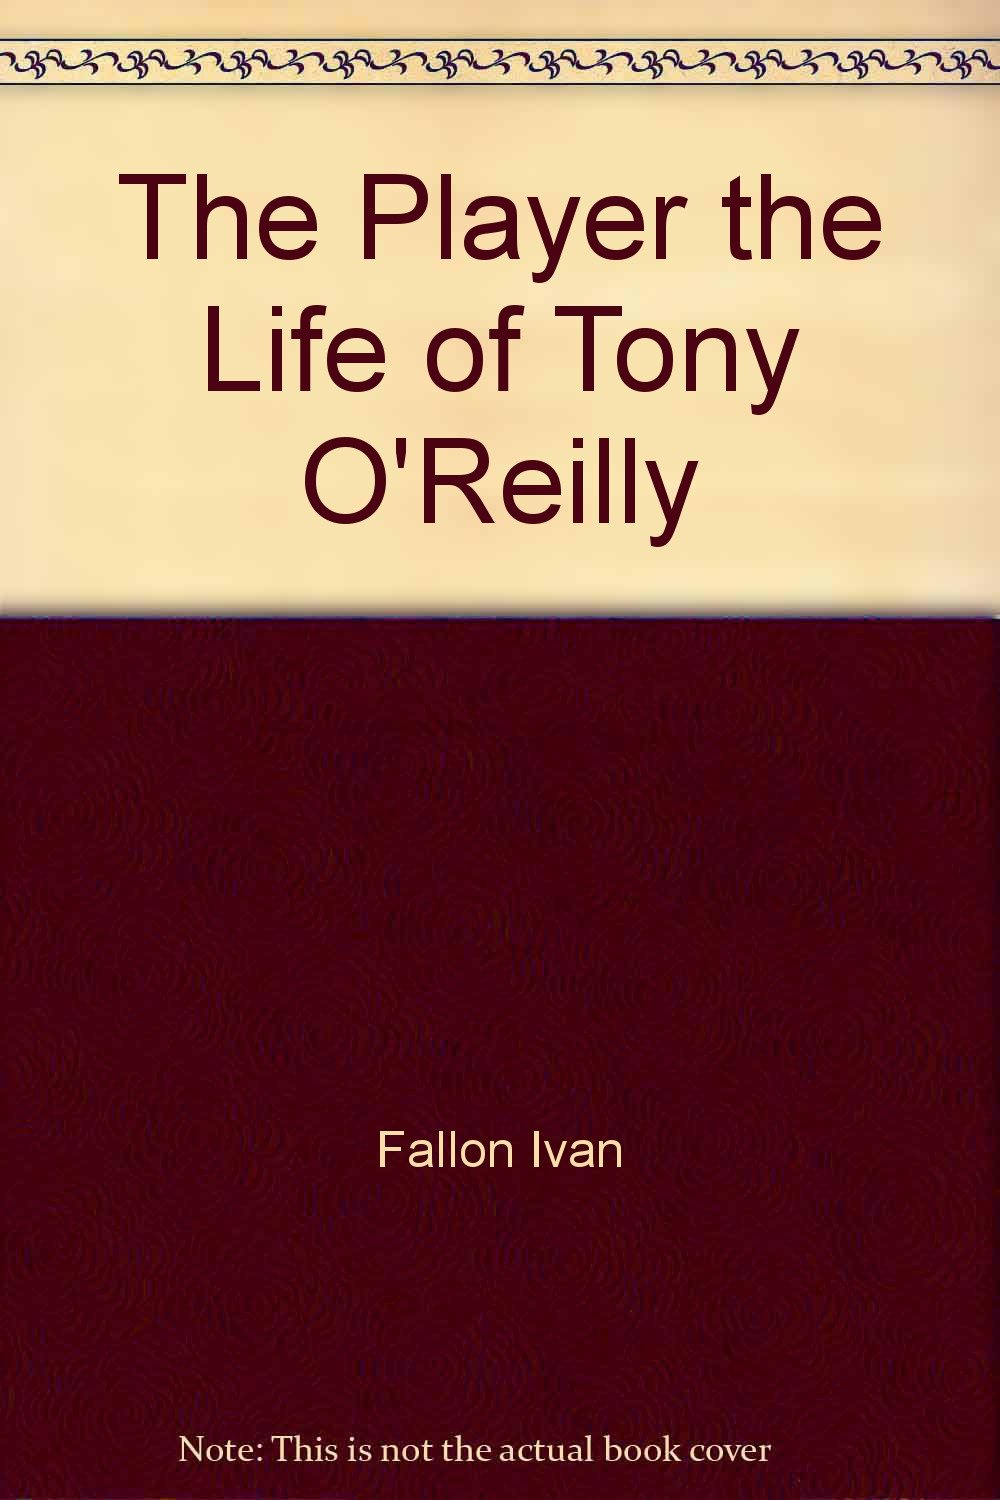 the player the life of tony oreilly